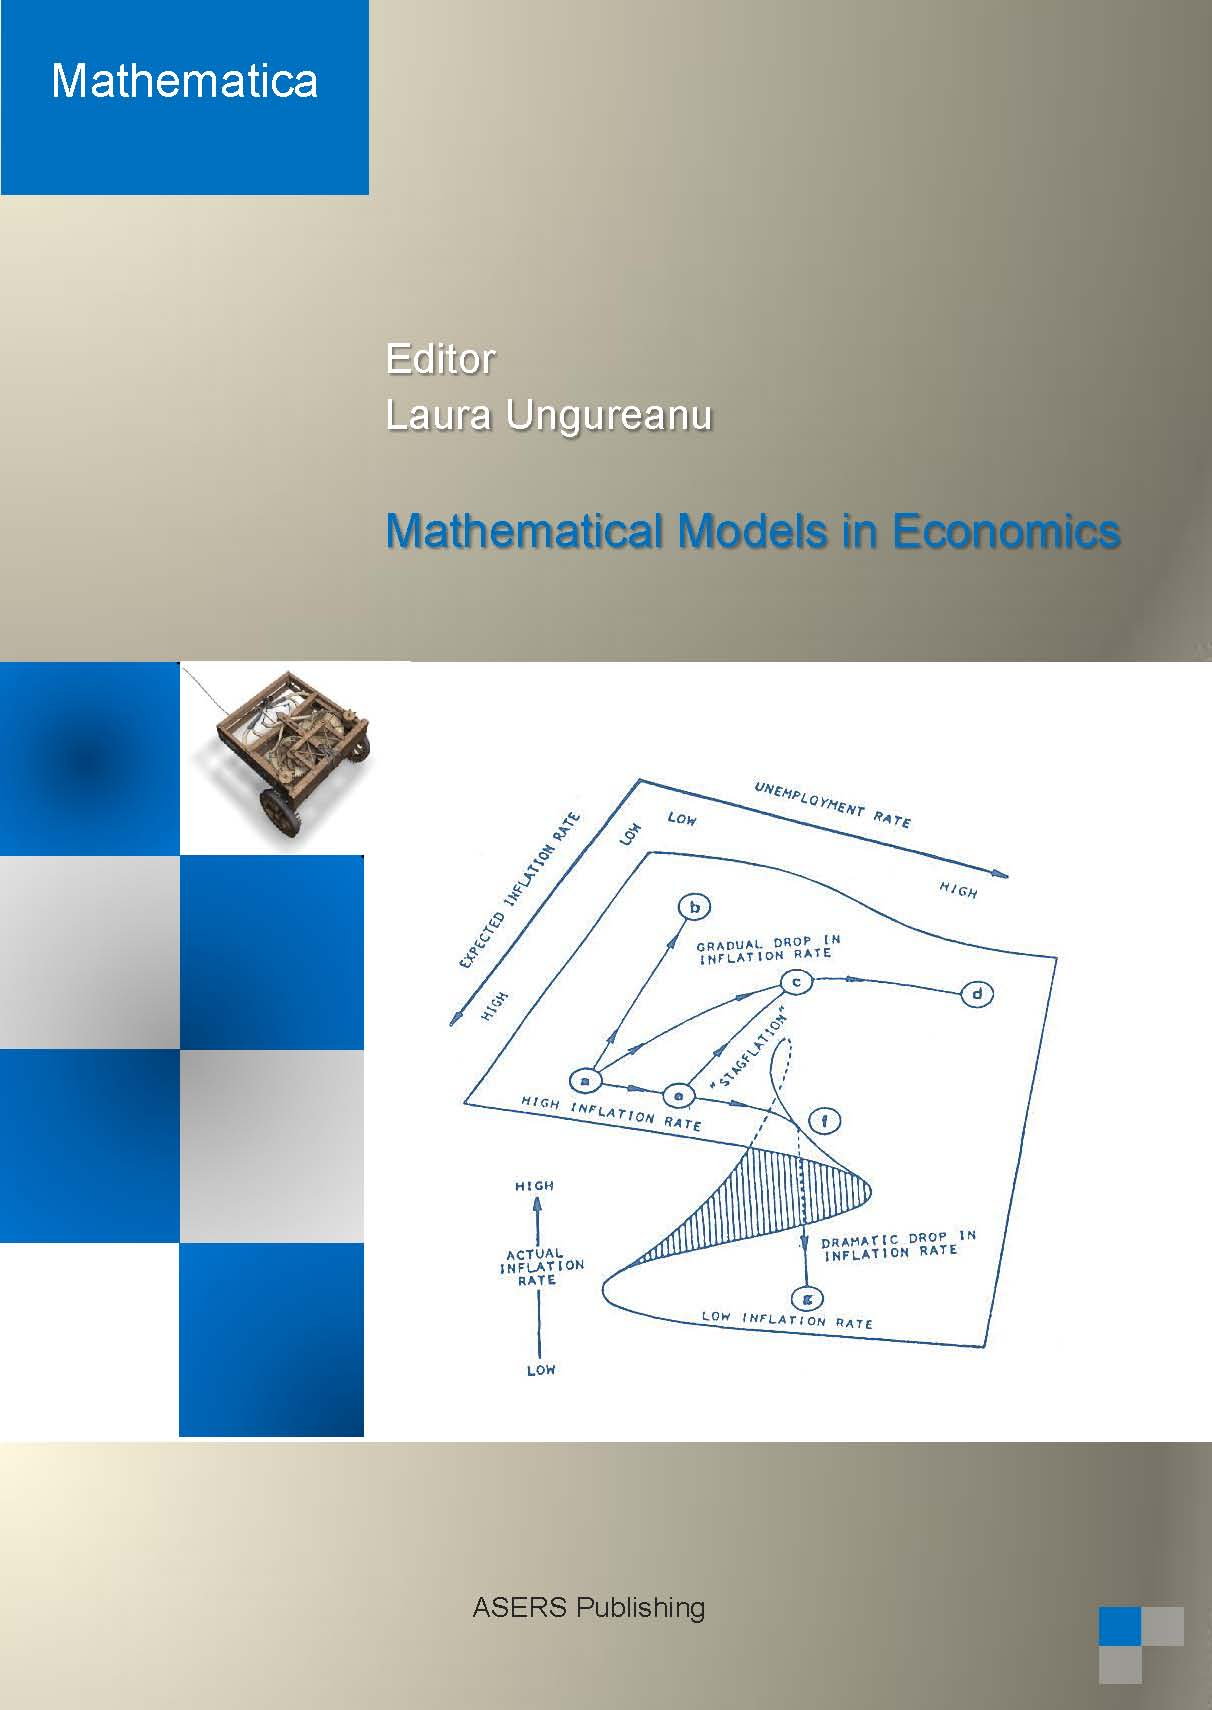 Mathematical Models in Economics